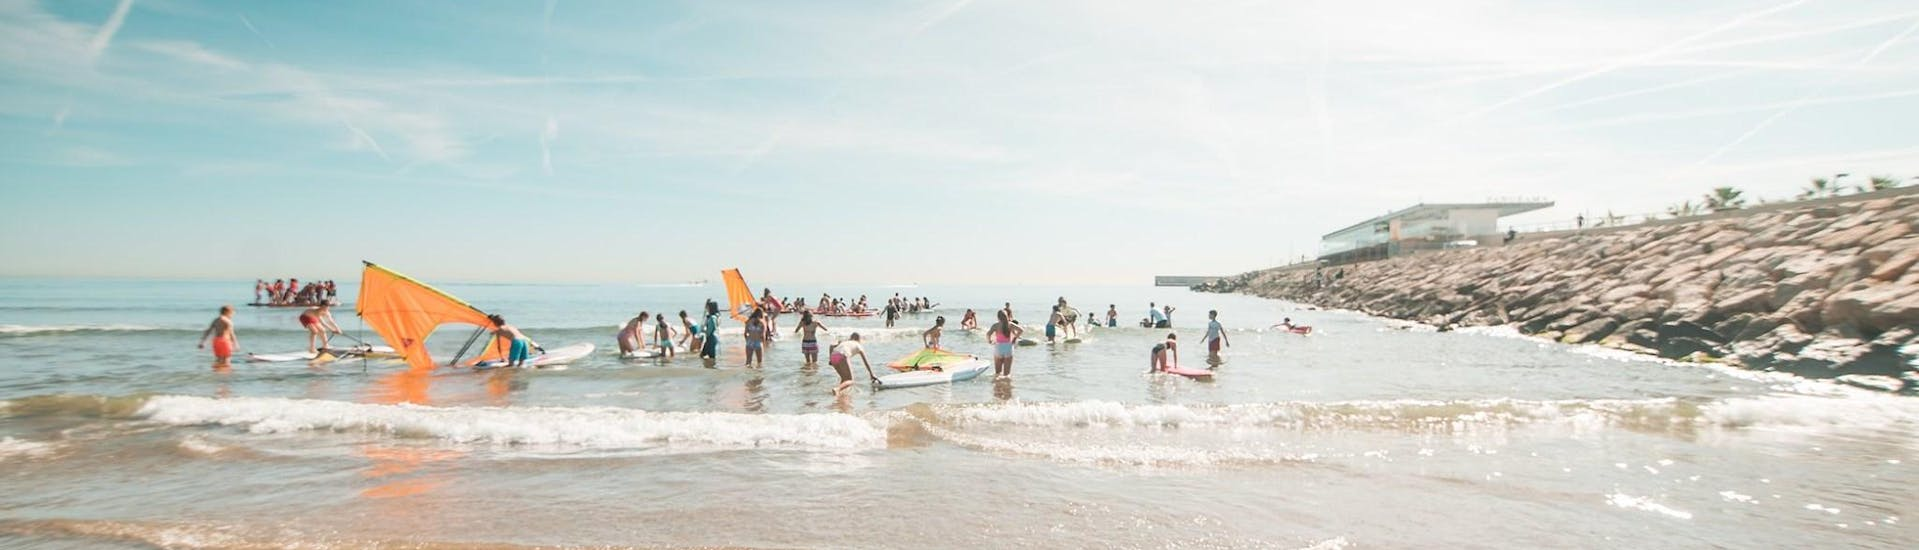 The beach of anywhere Watersports in Valencia.